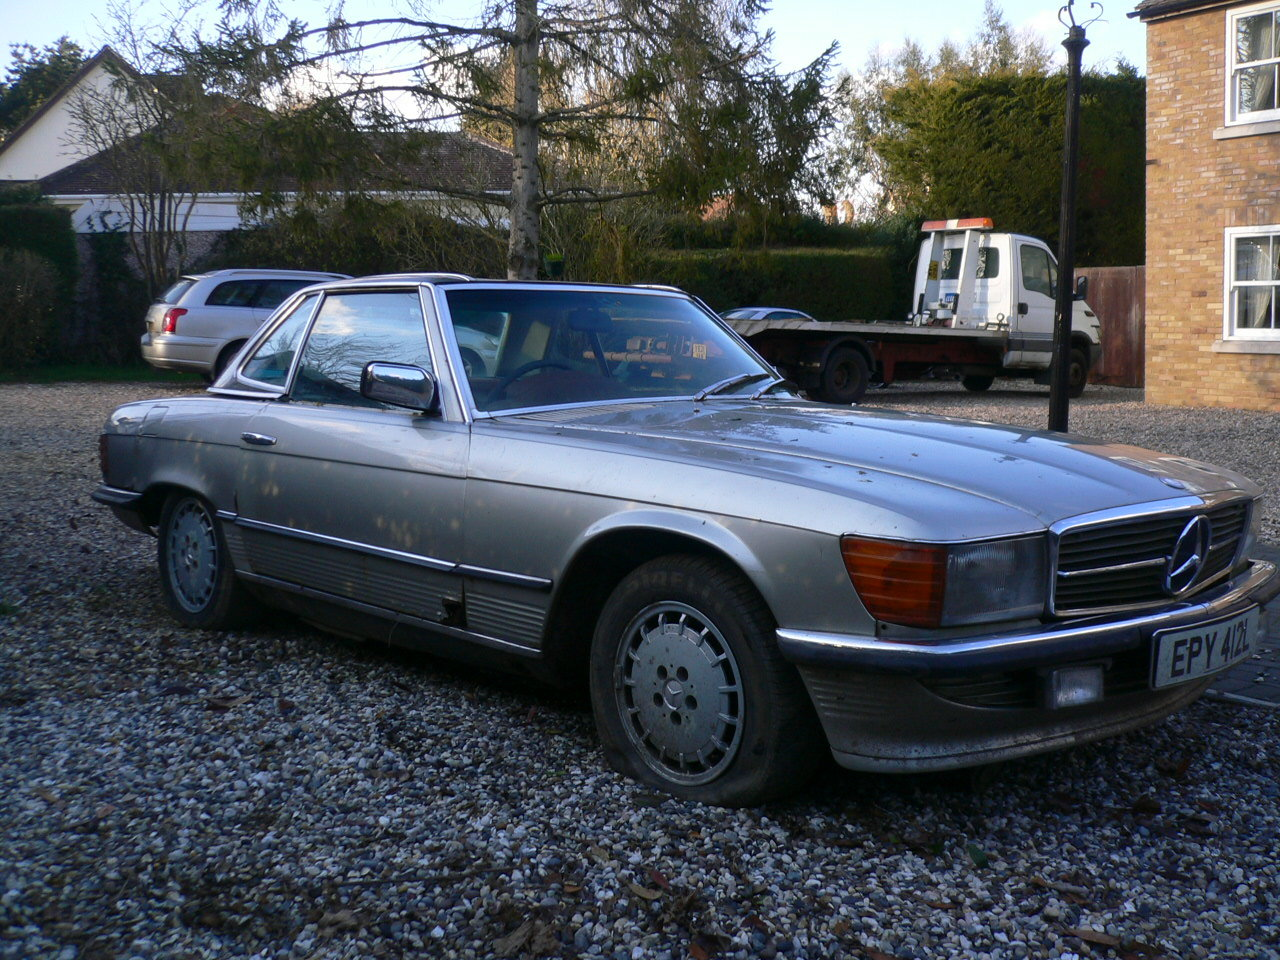 1973 mercedes sl 350 spares or repair  For Sale (picture 2 of 5)